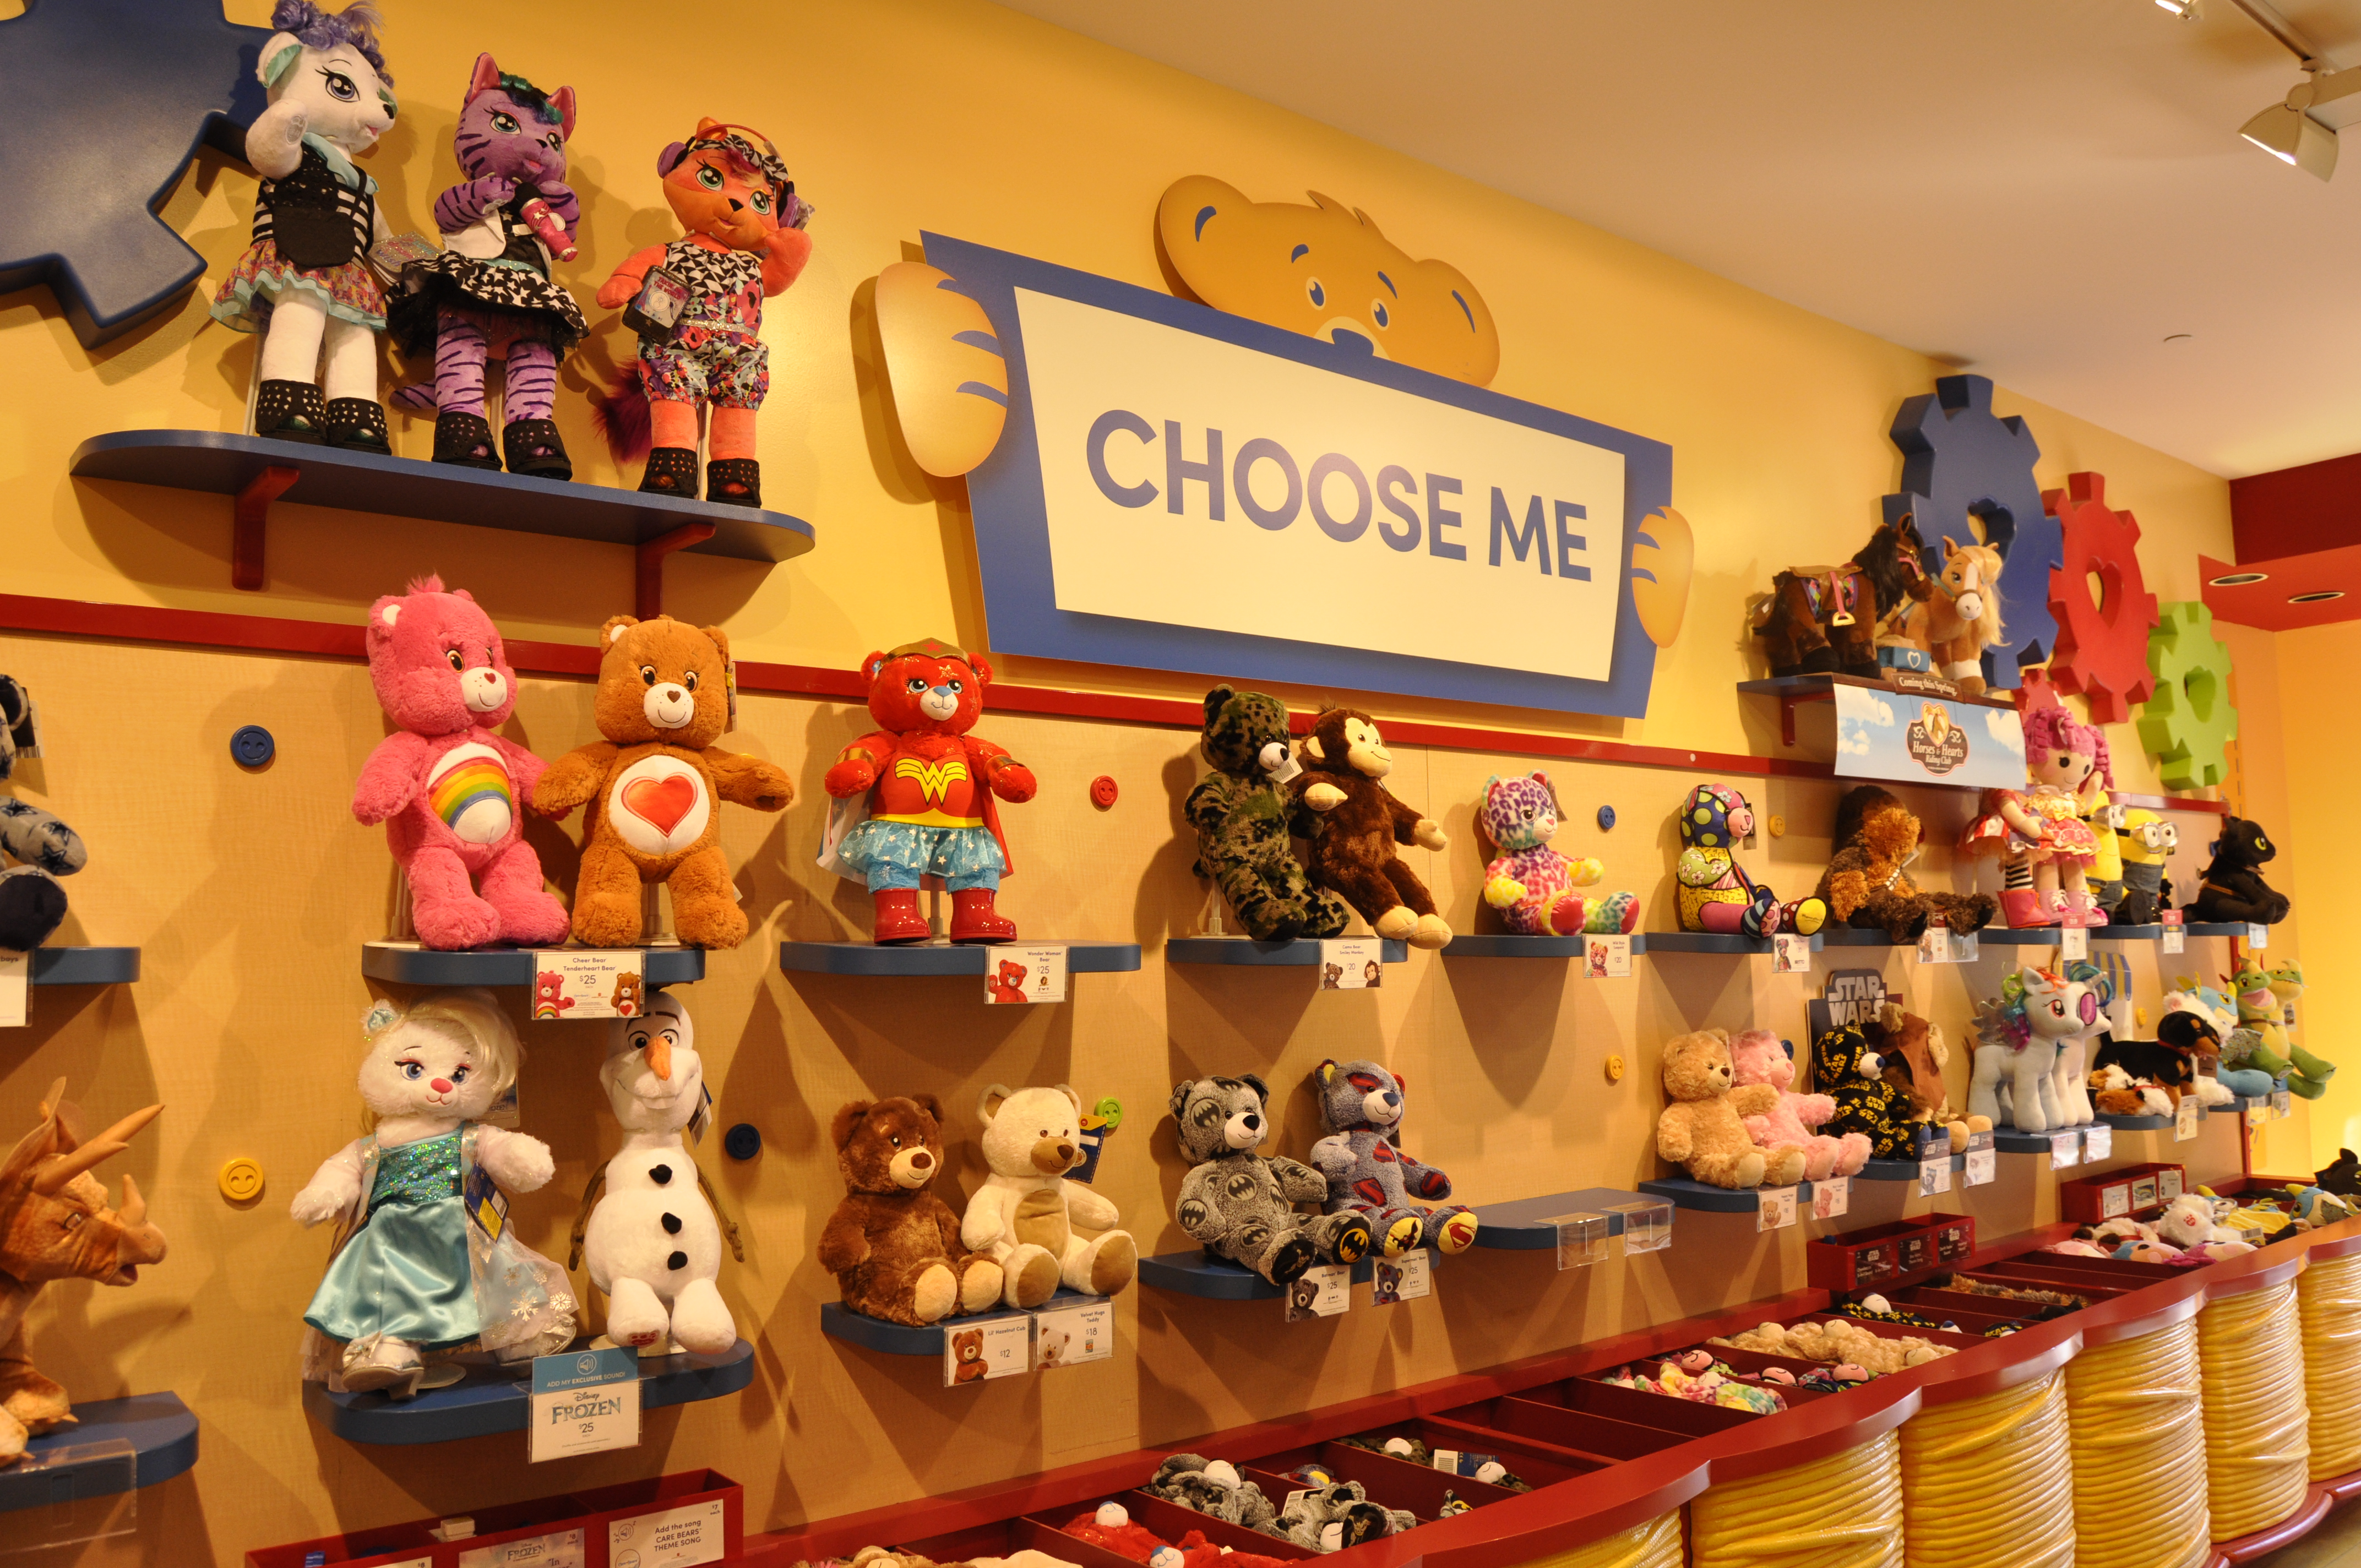 analysis of build a bear workshop inc Build a bear workshop inc with $364 million revenues in the year 2016 was the number 4 toys and games company read this report to know the top competitors of build a bear workshop and identify growth and cost optimization opportunities of build a bear workshop.